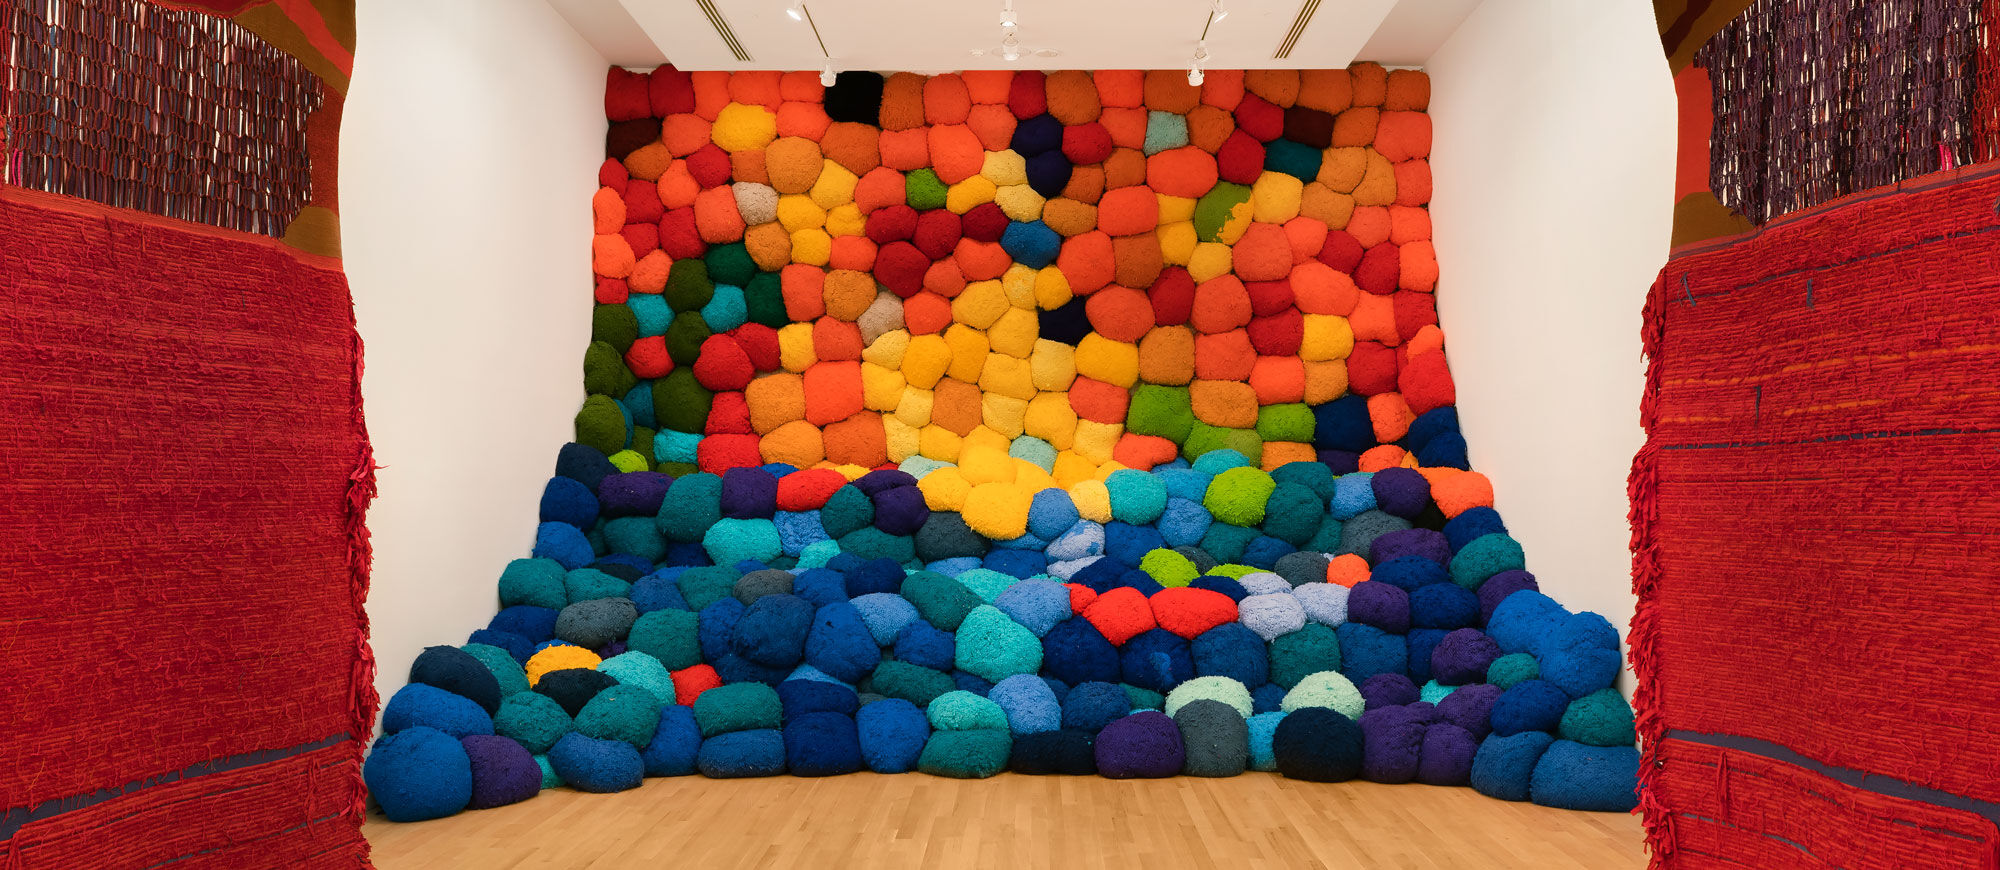 Installation view of Sheila Hicks, Escalade Beyond Chromatic Lands, 2016–17, at The Bass, 2019. Photo by Zachary Balber. Courtesy of The Bass, Miami Beach.